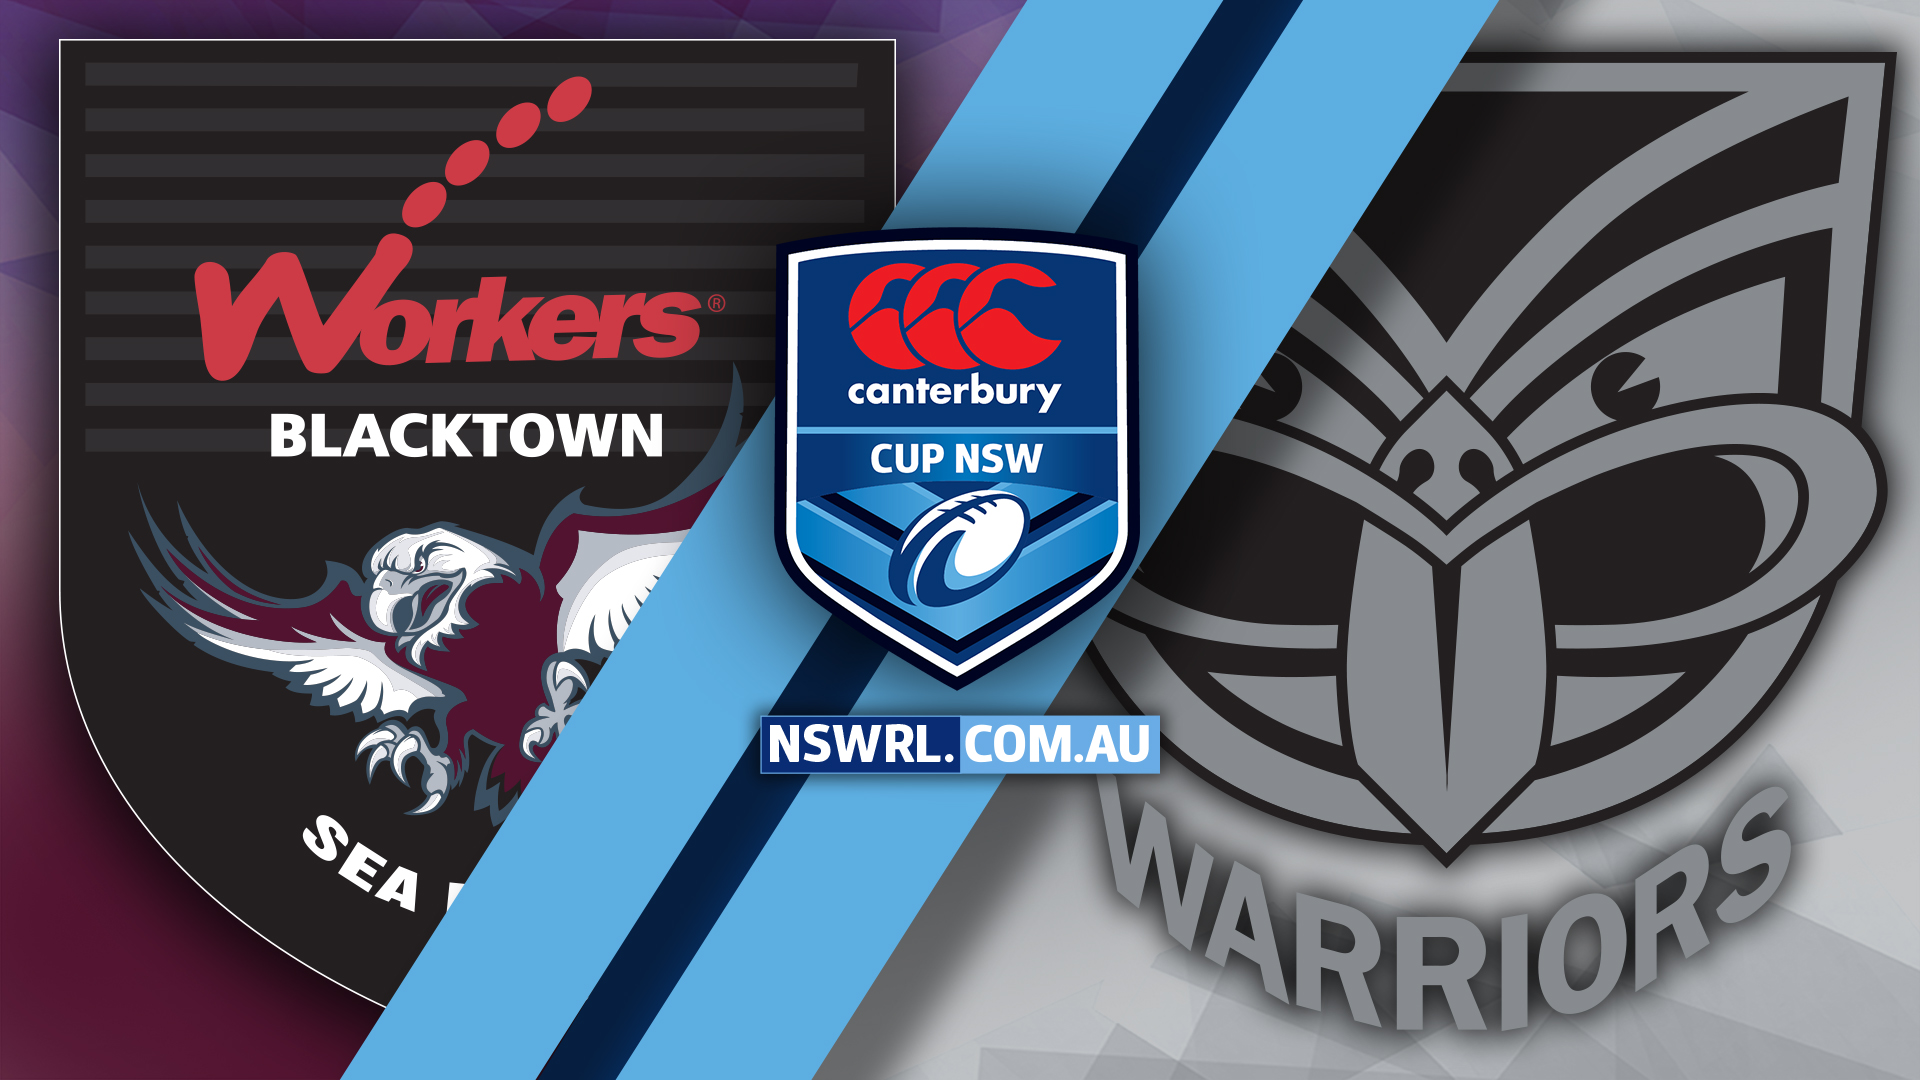 HIGHLIGHTS | Blacktown Workers v Warriors – Round 3